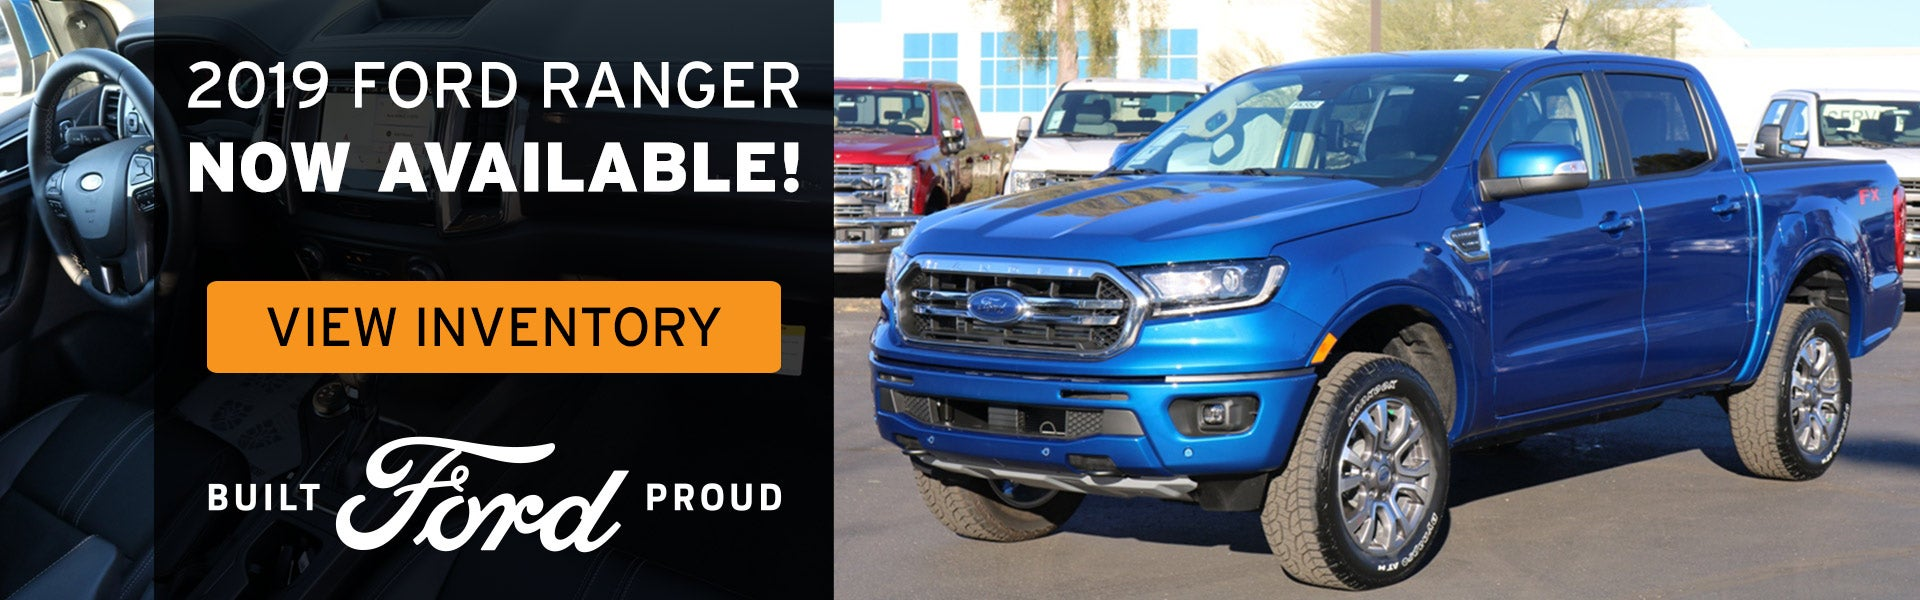 Come See The New Ford Ranger At Earnhardt In Chandler